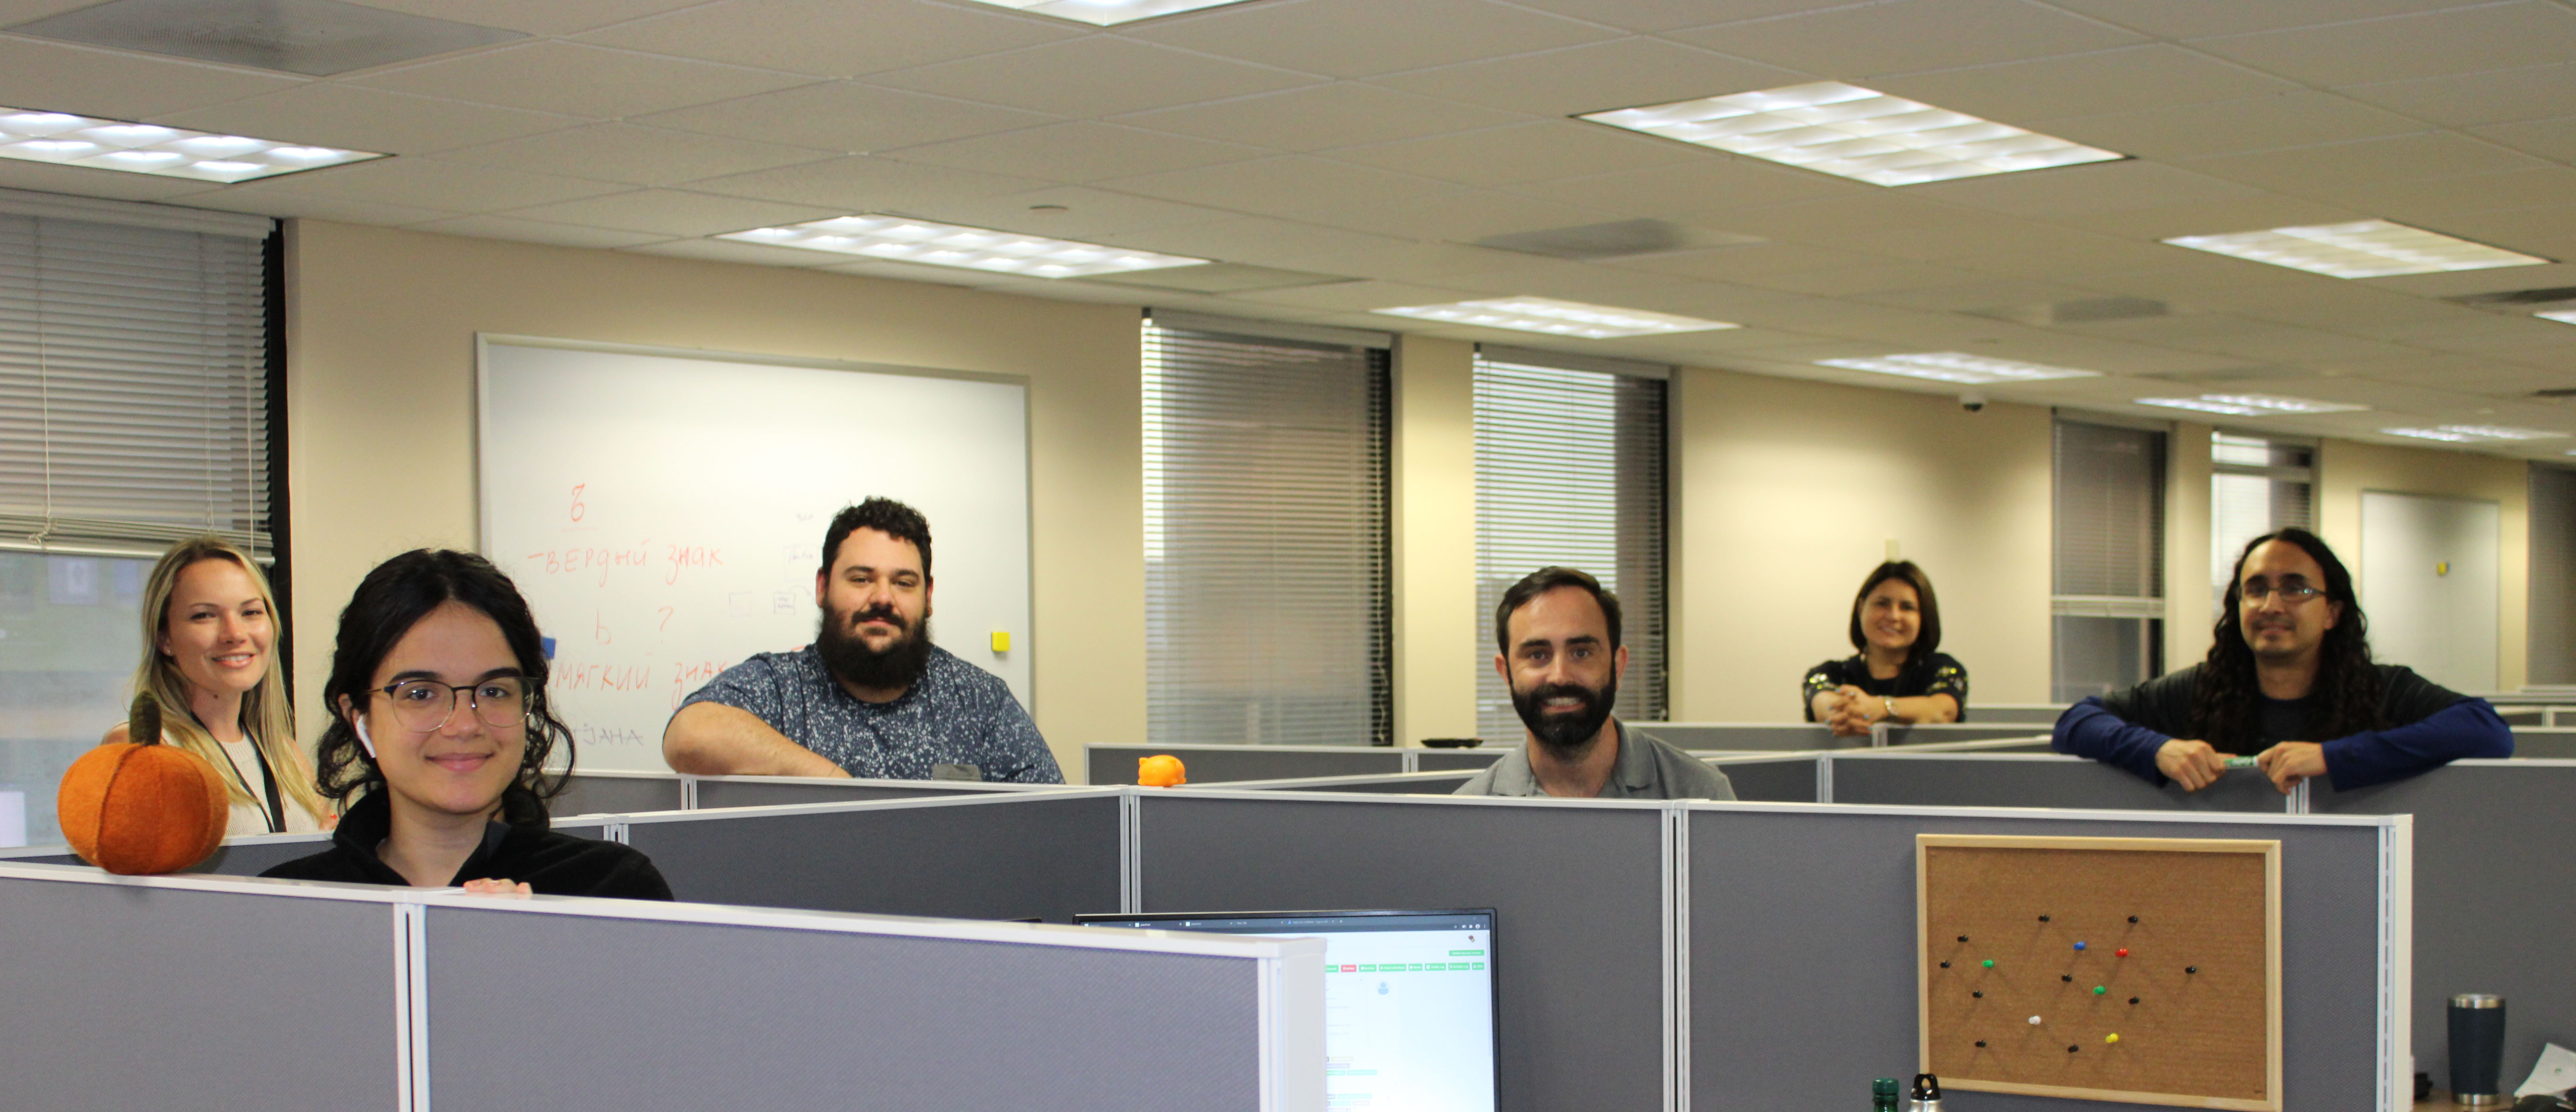 PlanHub Announces Second Office Expansion to Support Accelerated Growth